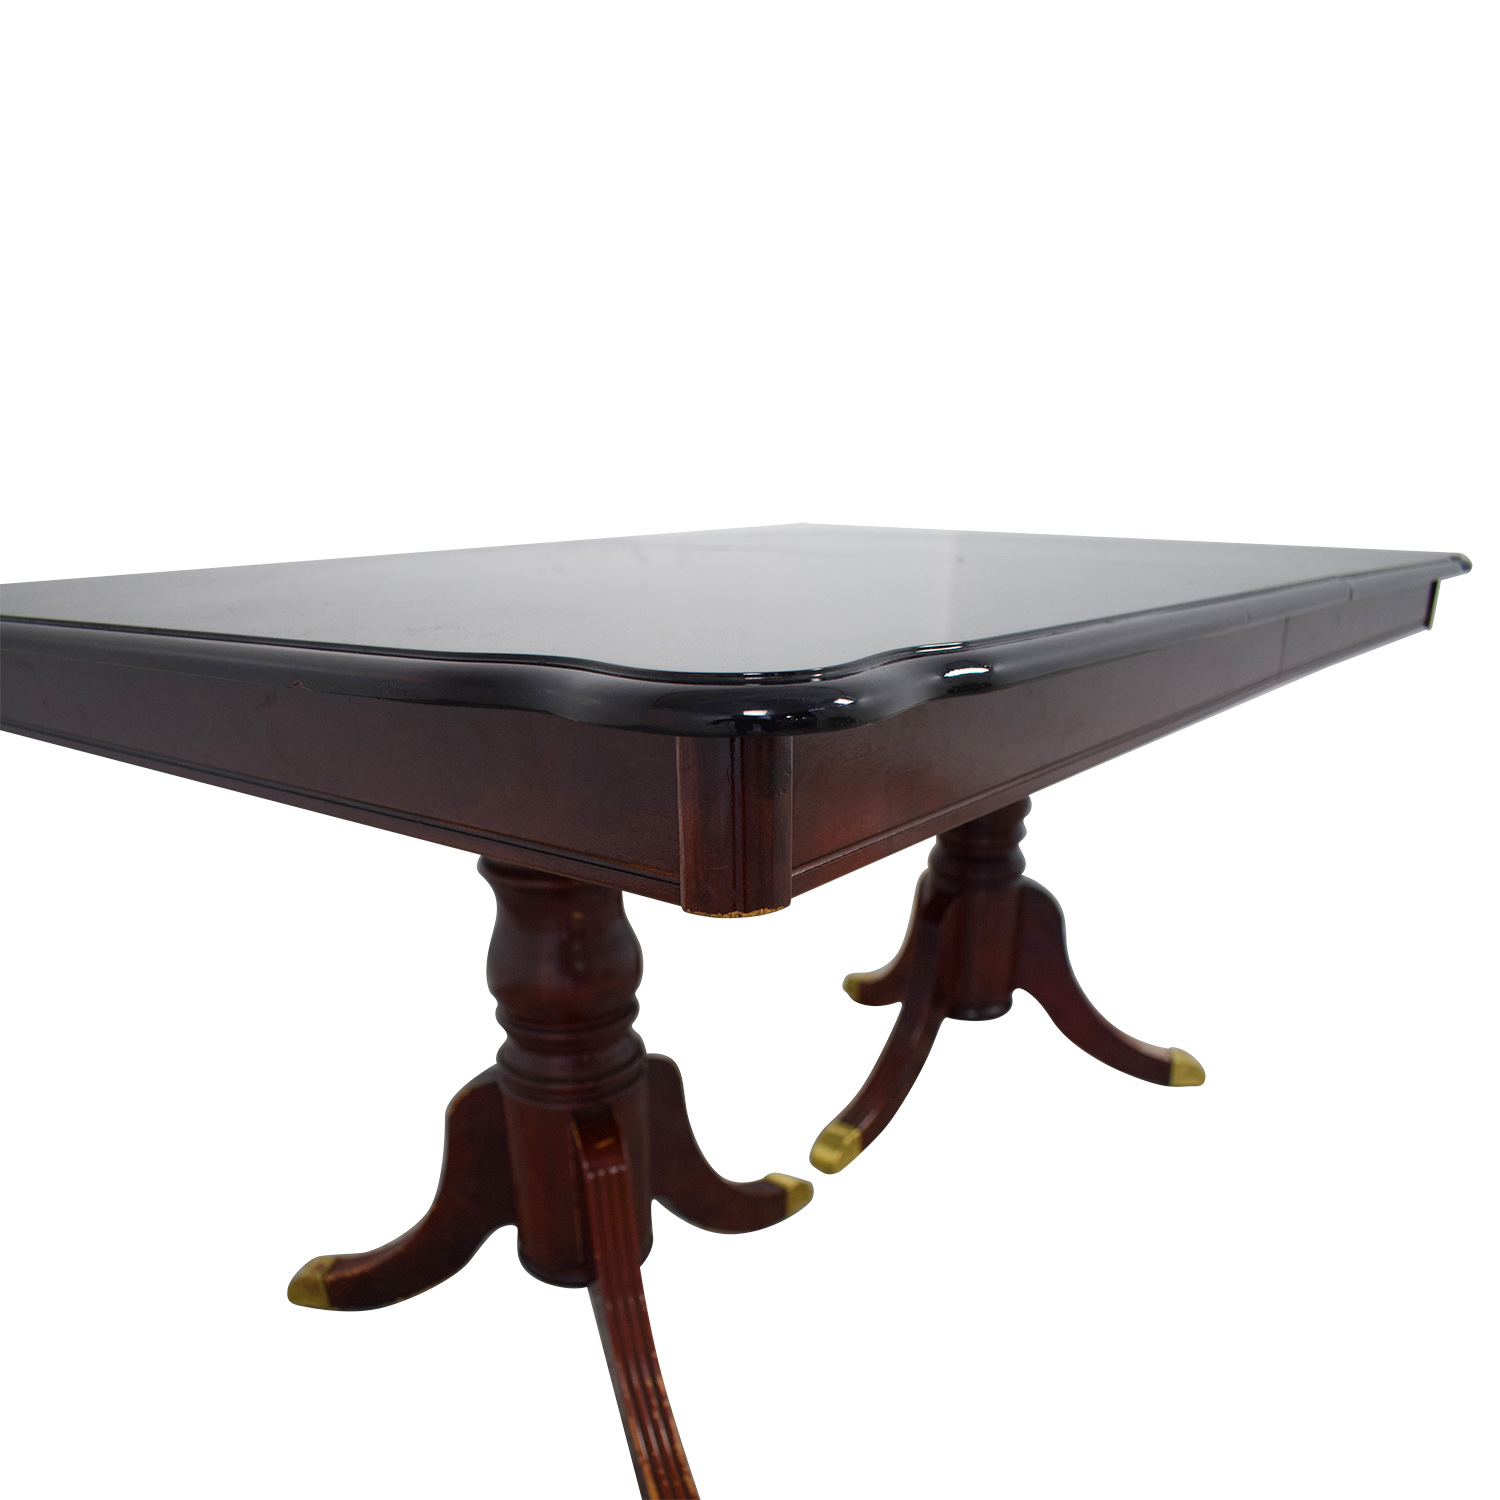 buy  Extendable Wood Dining Table with Leaf online